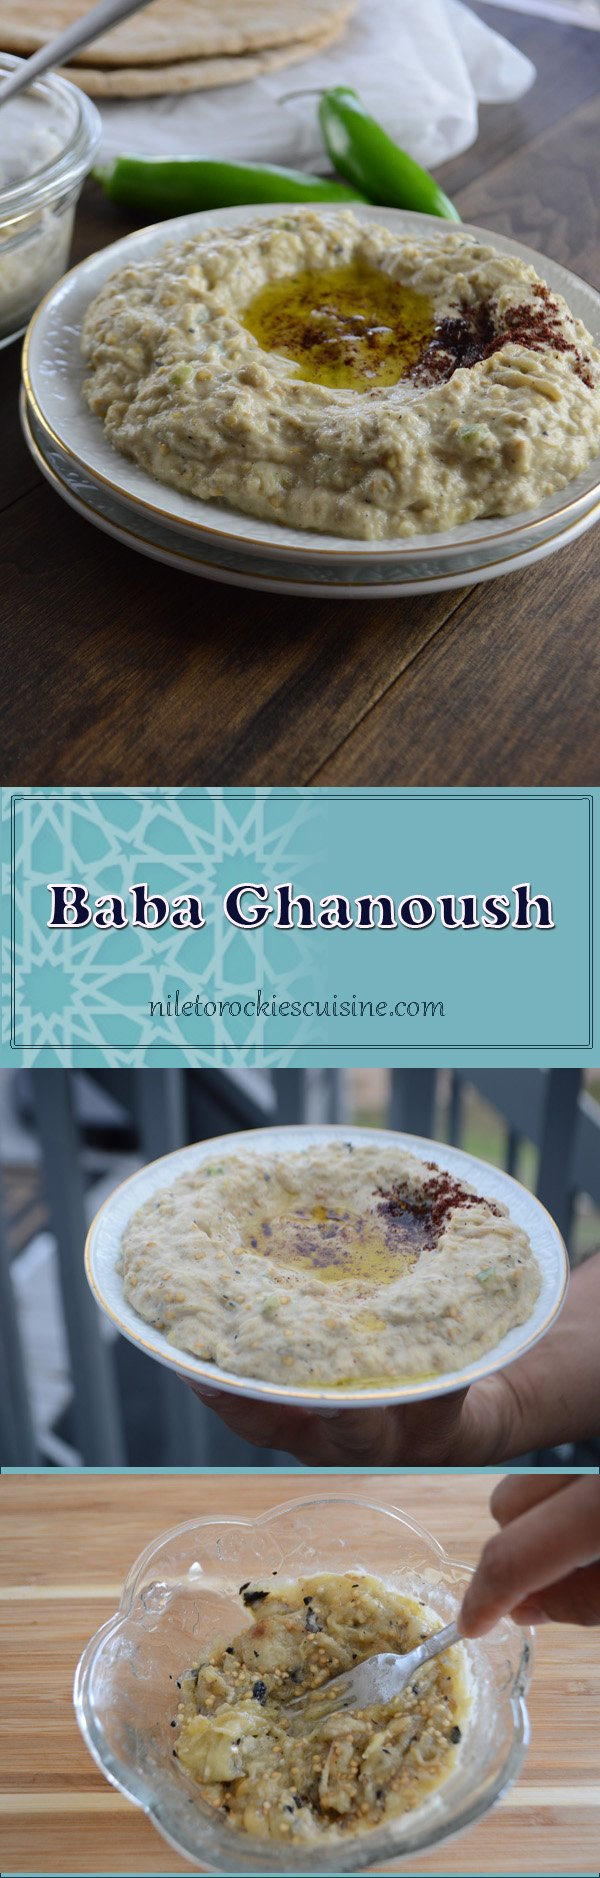 Baba Ghanoush | NILE TO ROCKIES CUISINE